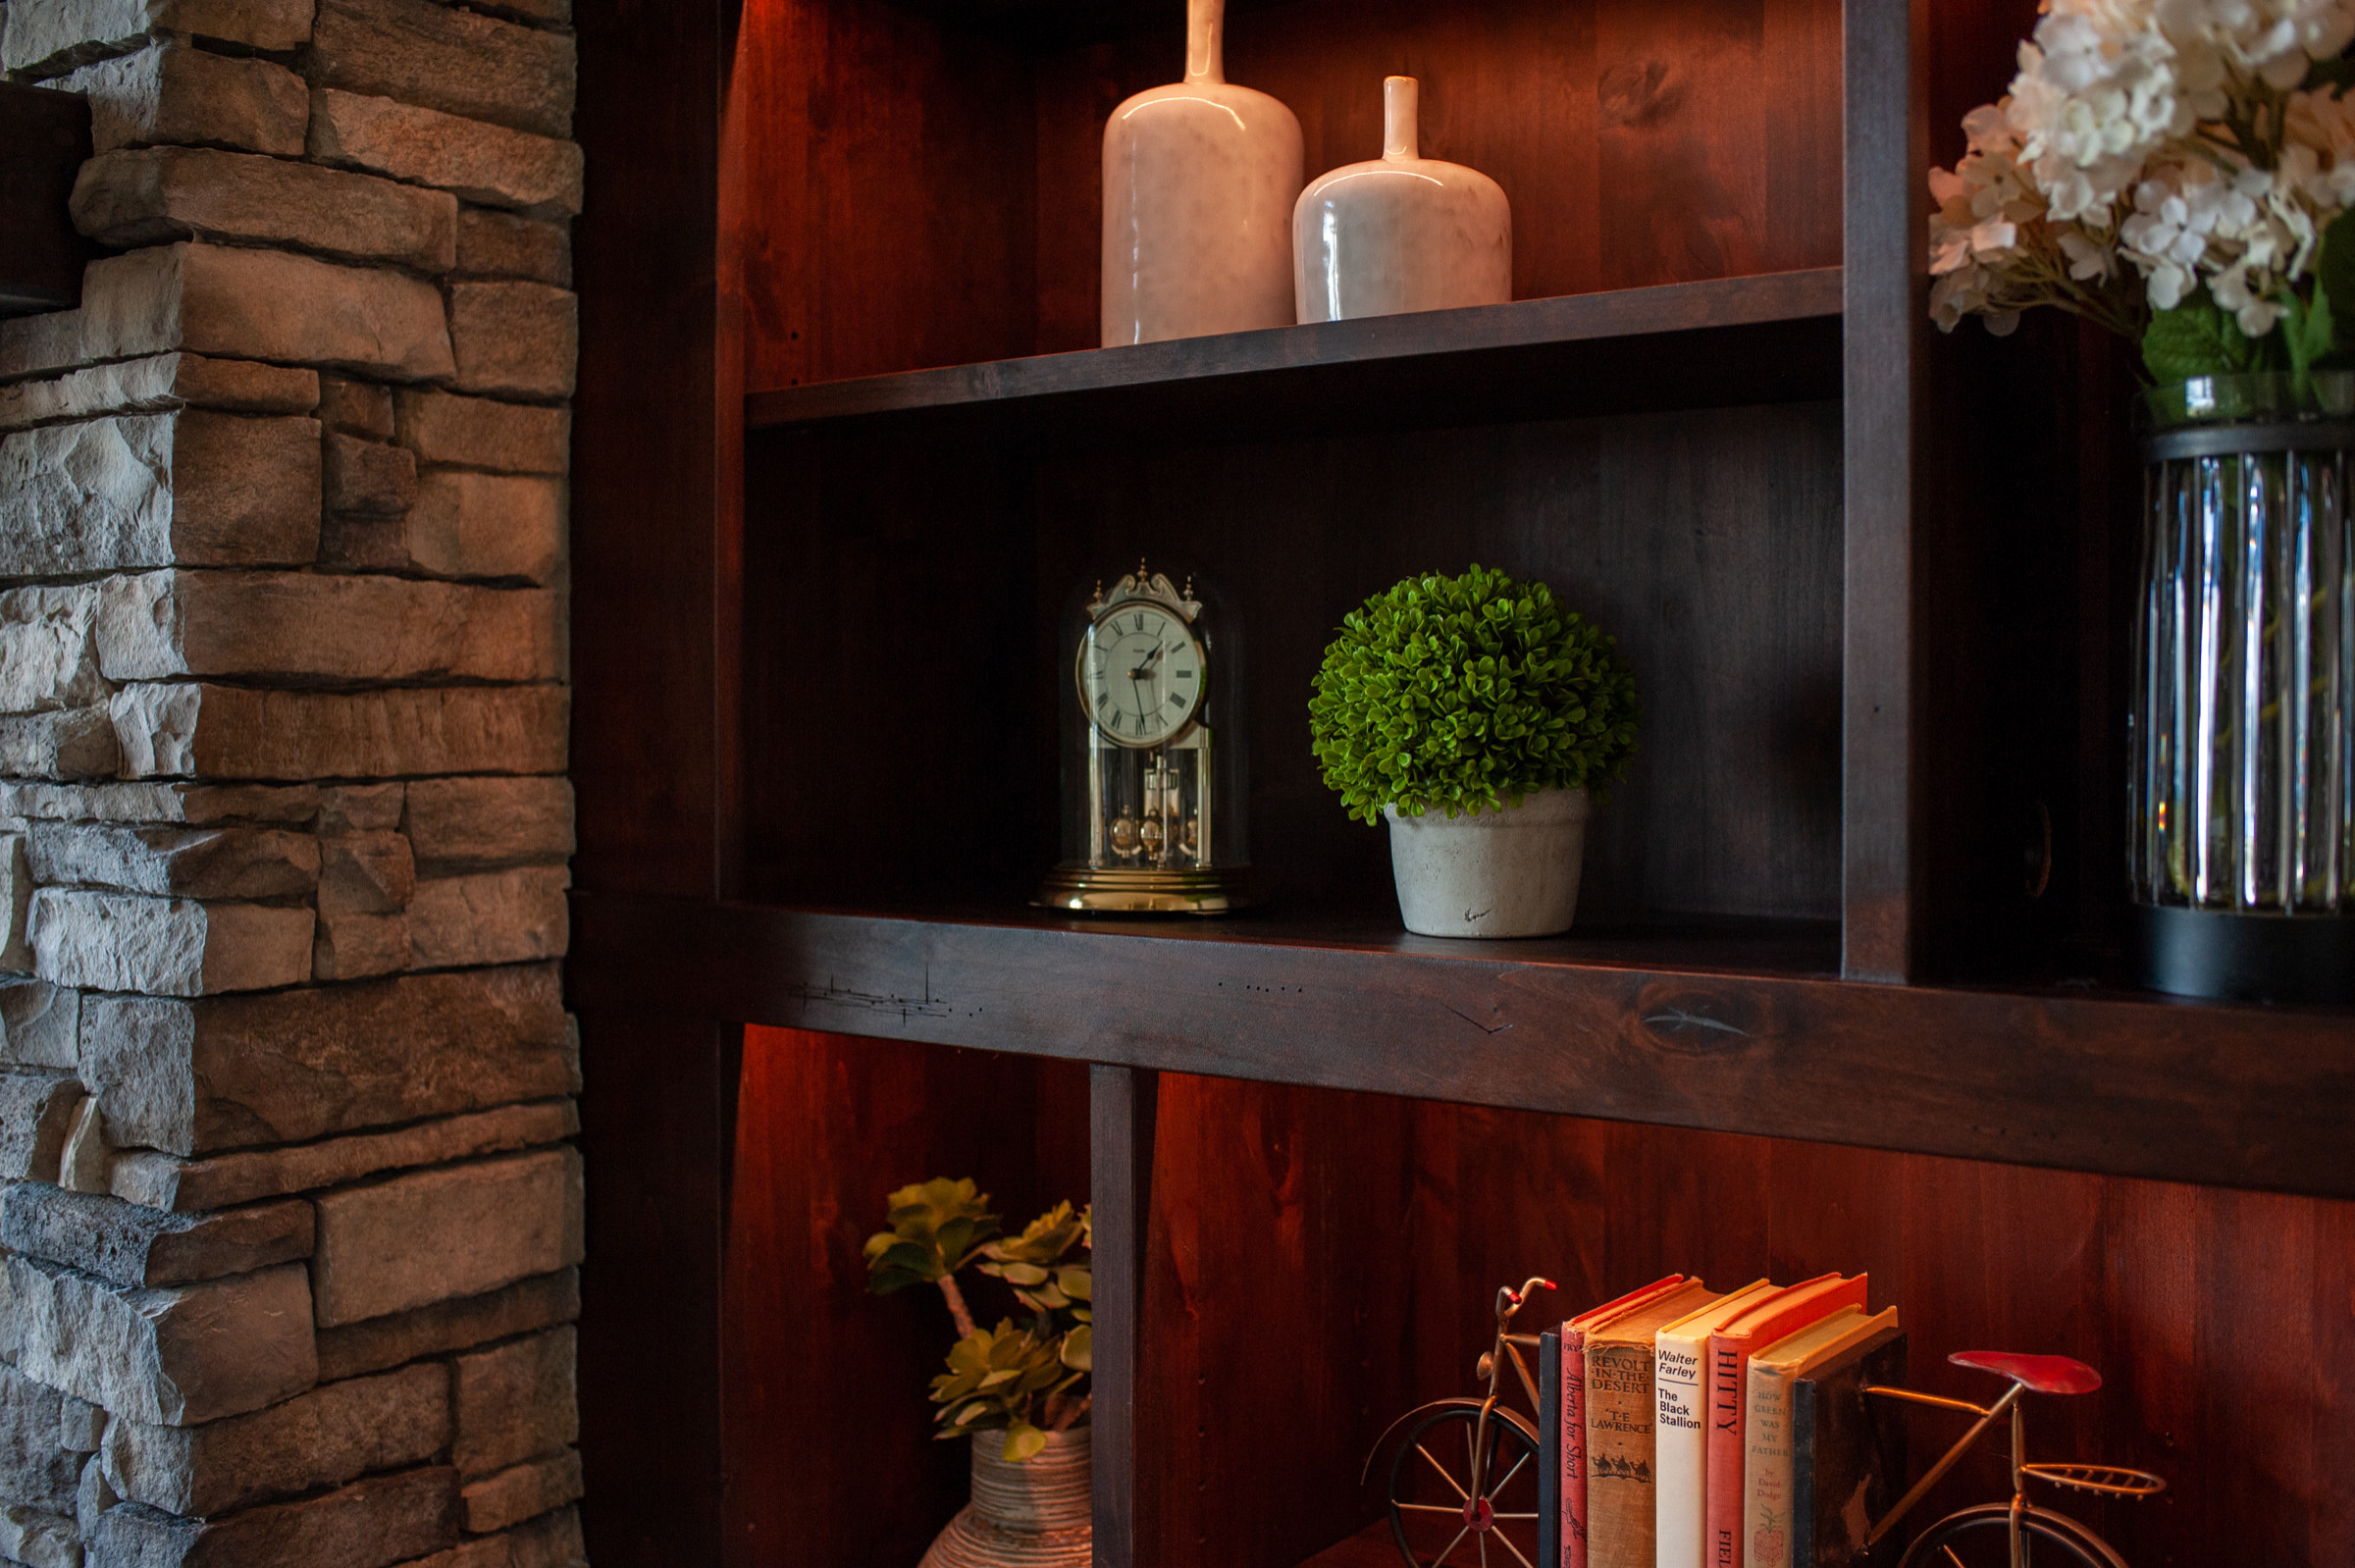 Custom Woodwork, Cabinets with Granite Countertops and Fireplace Hearth